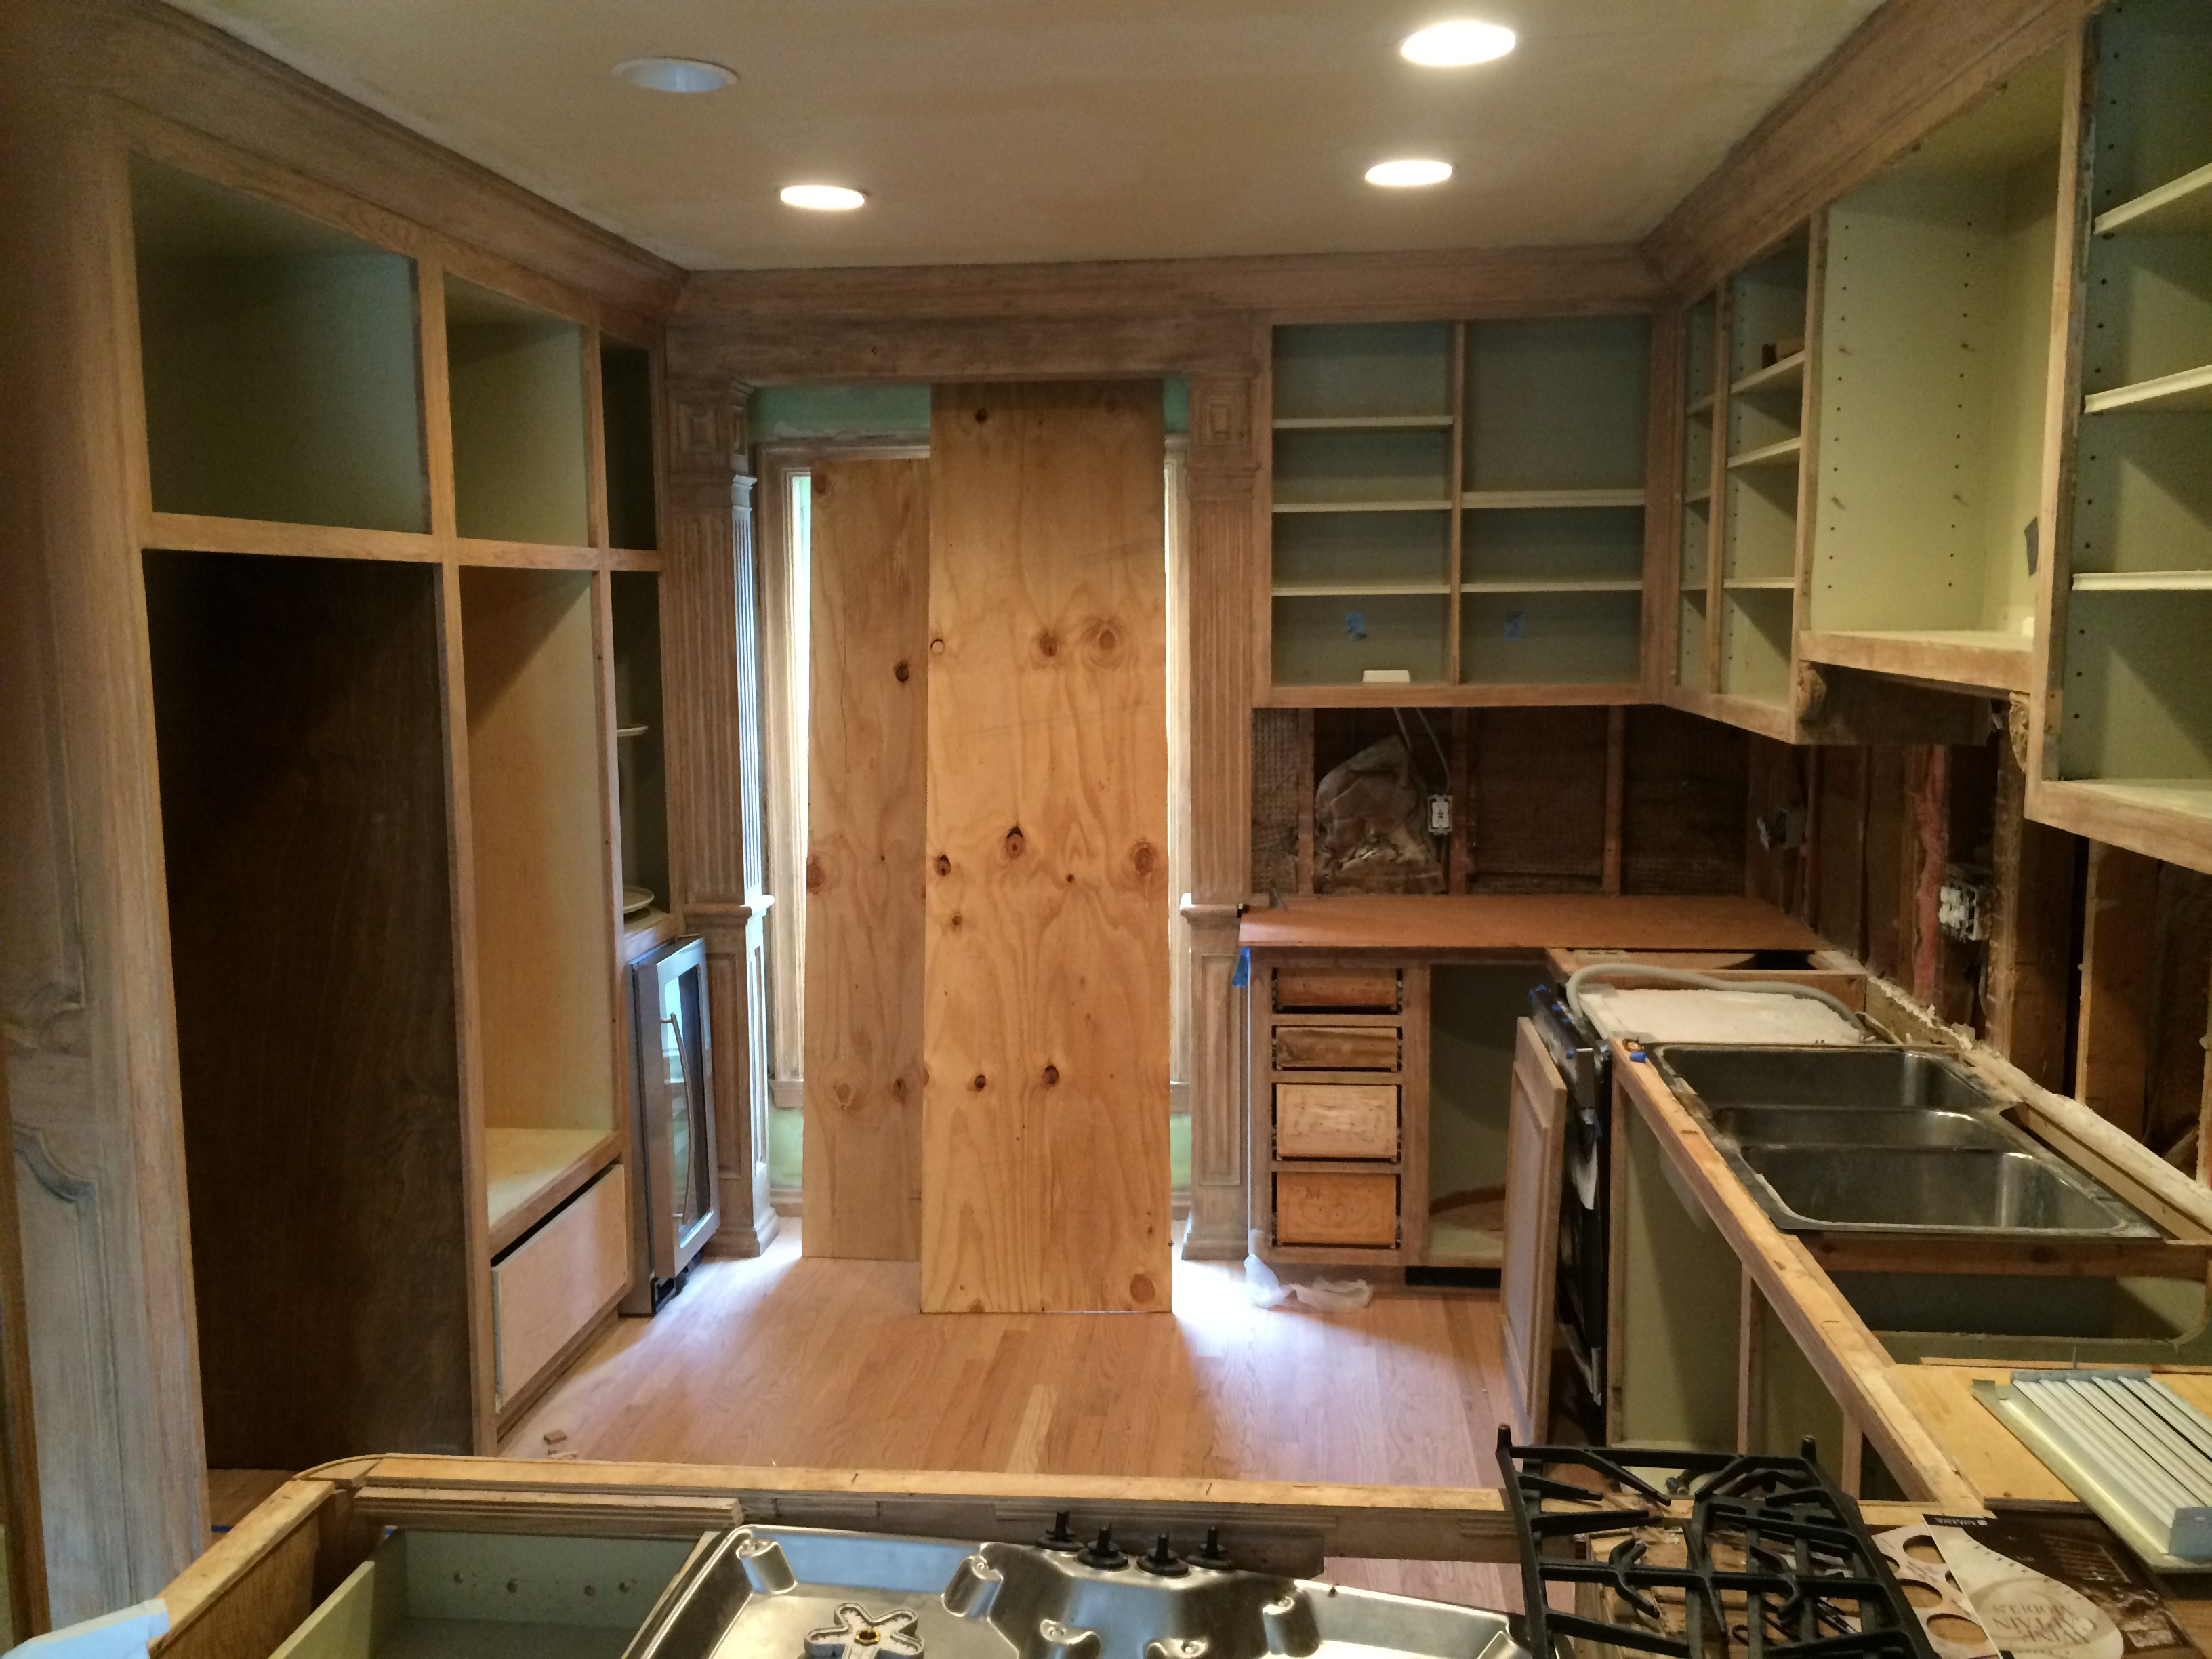 kitchen before scovell wolfe remodel